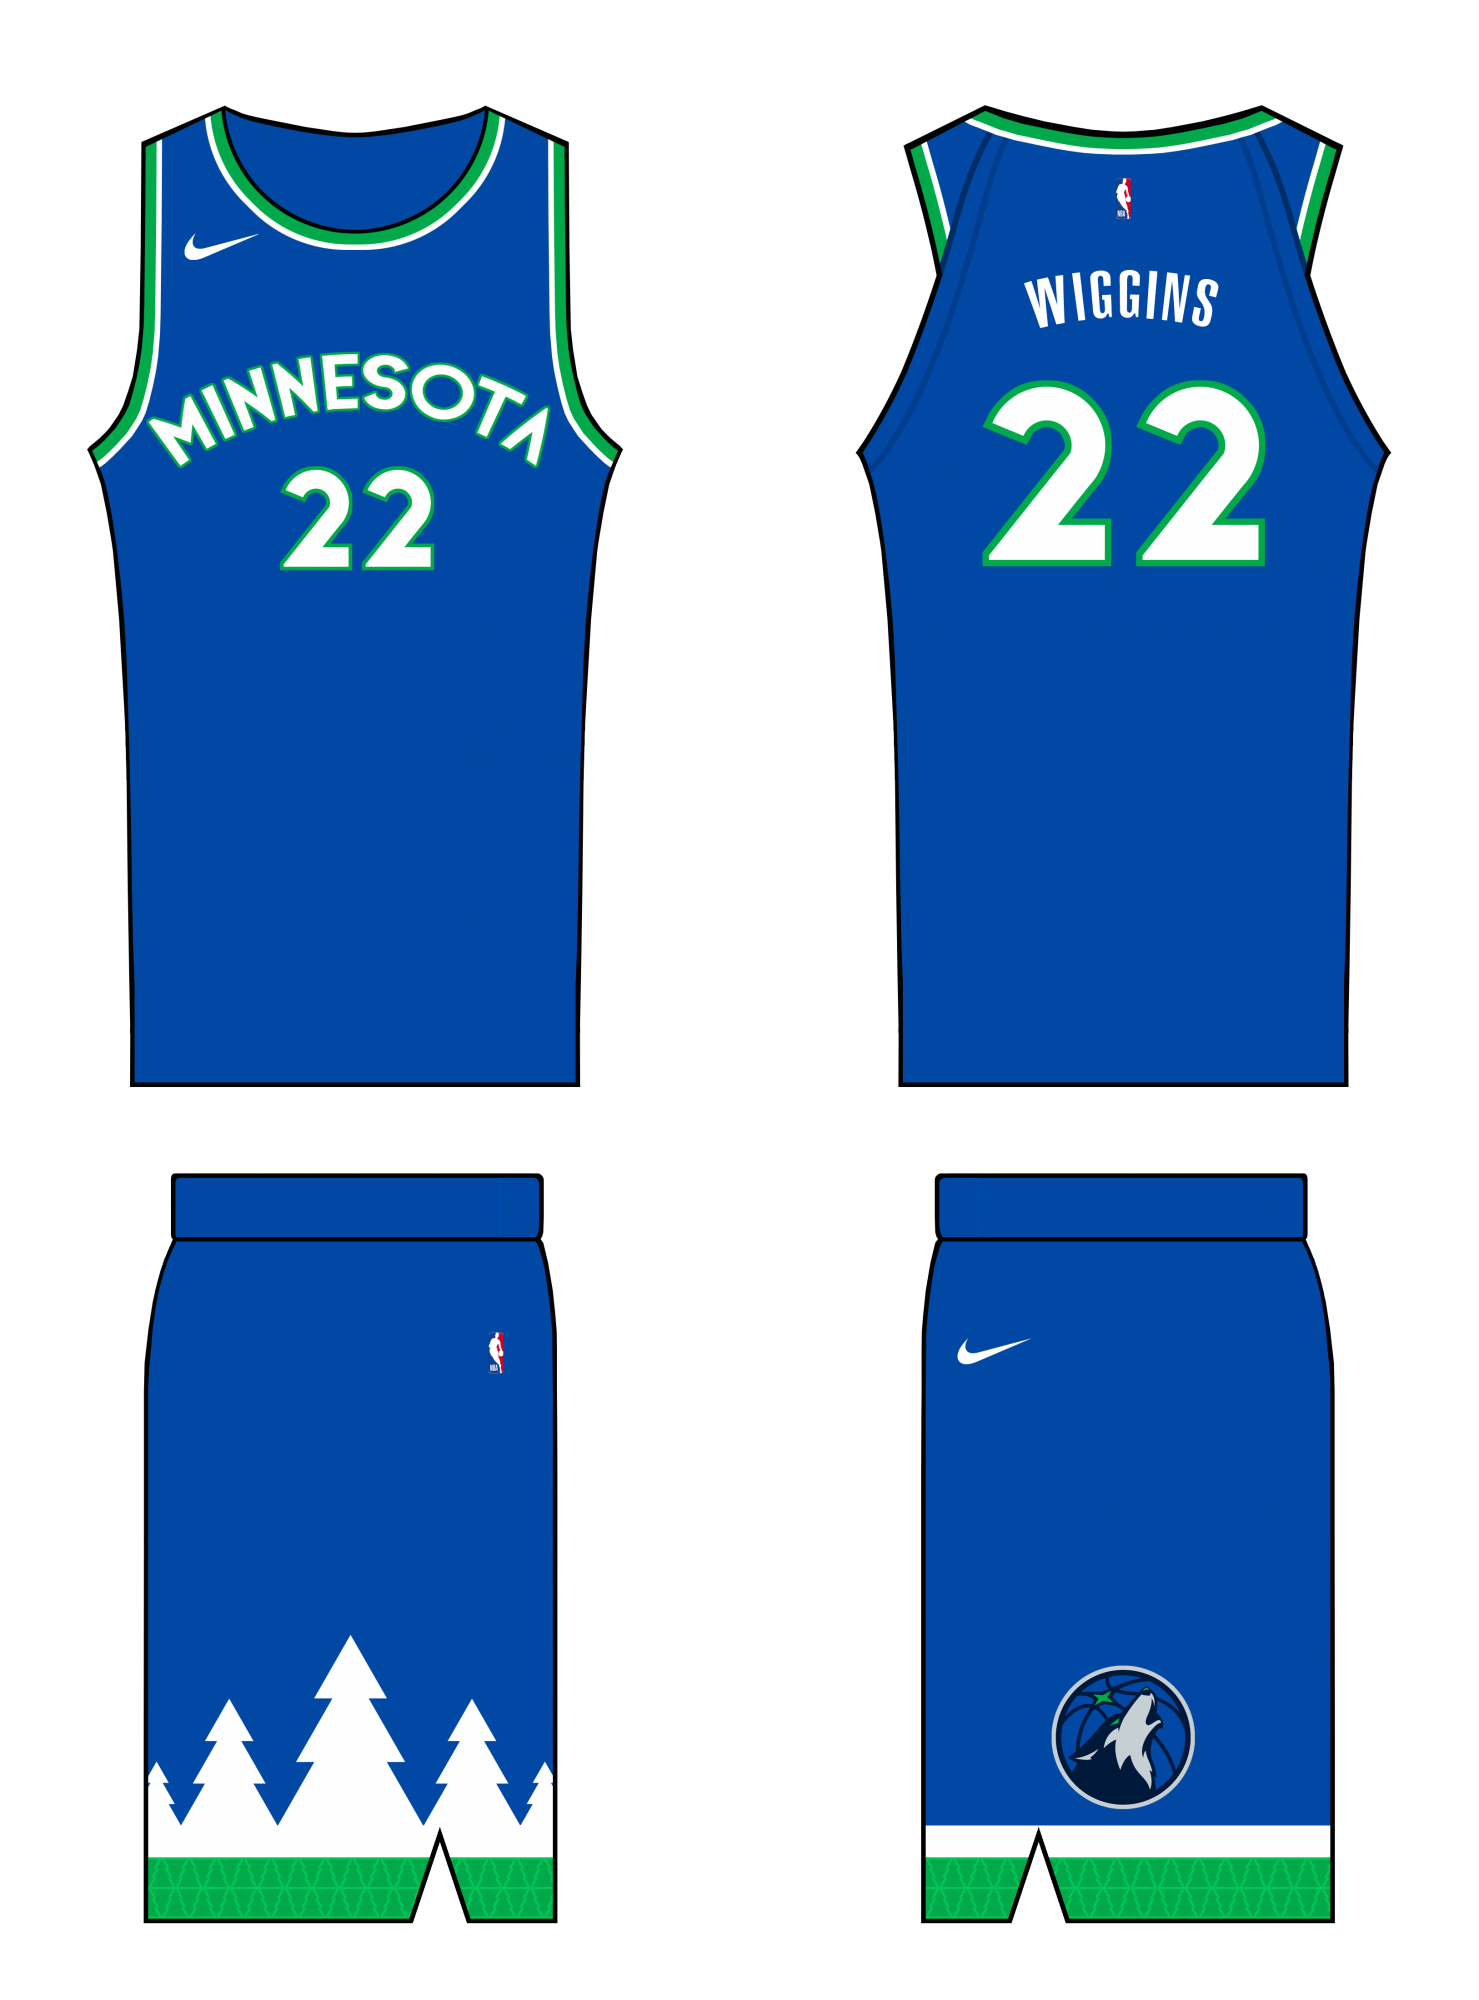 Minnesota Timberwolves Nba Concepts By Honeybadger Concepts